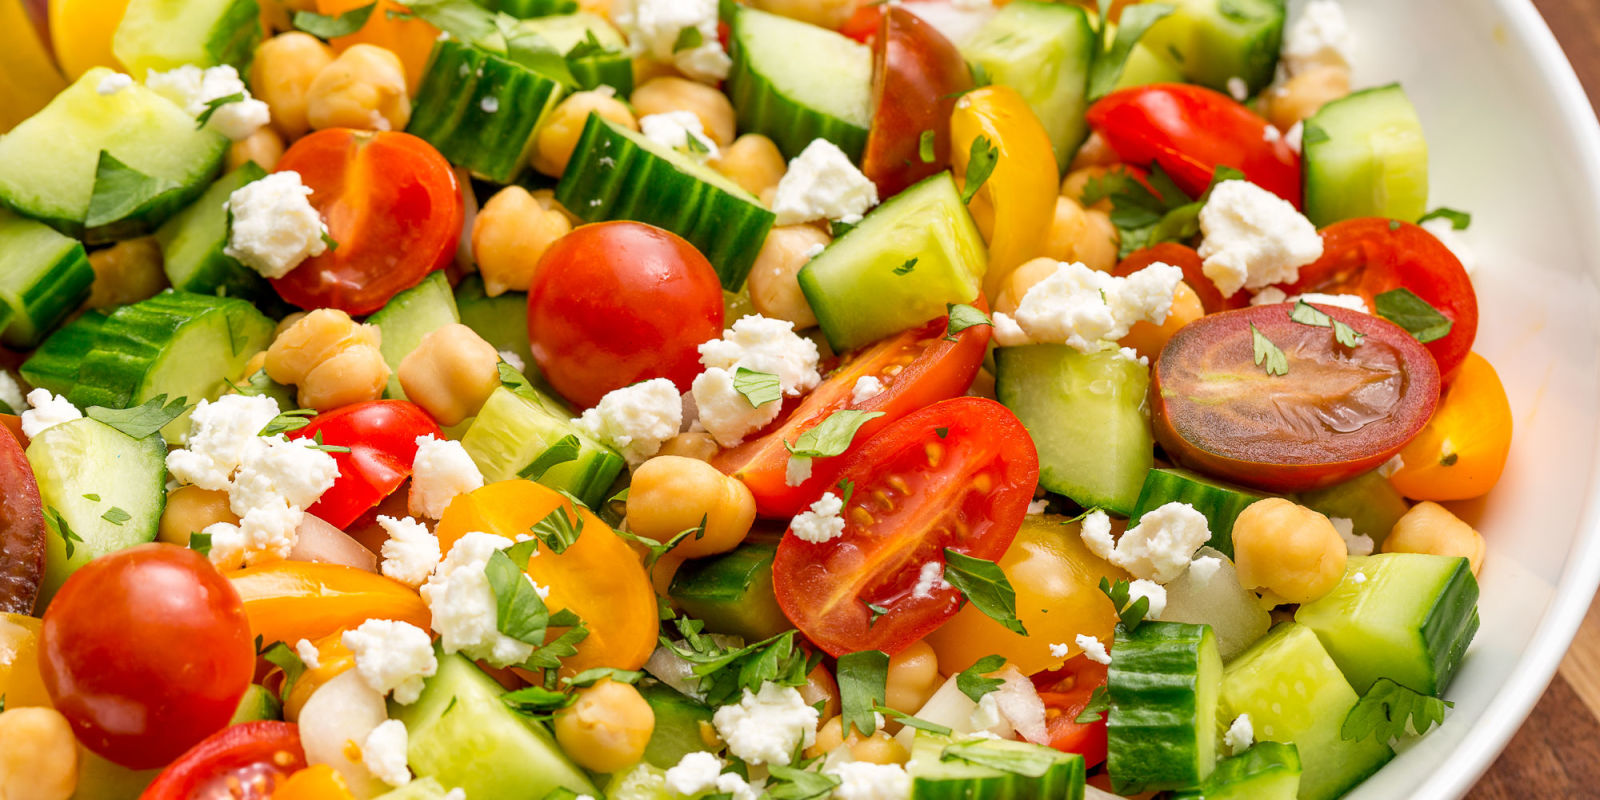 Tomato Cucumber Feta Salad Recipe - How To Make Tomato Cucumber Feta ...